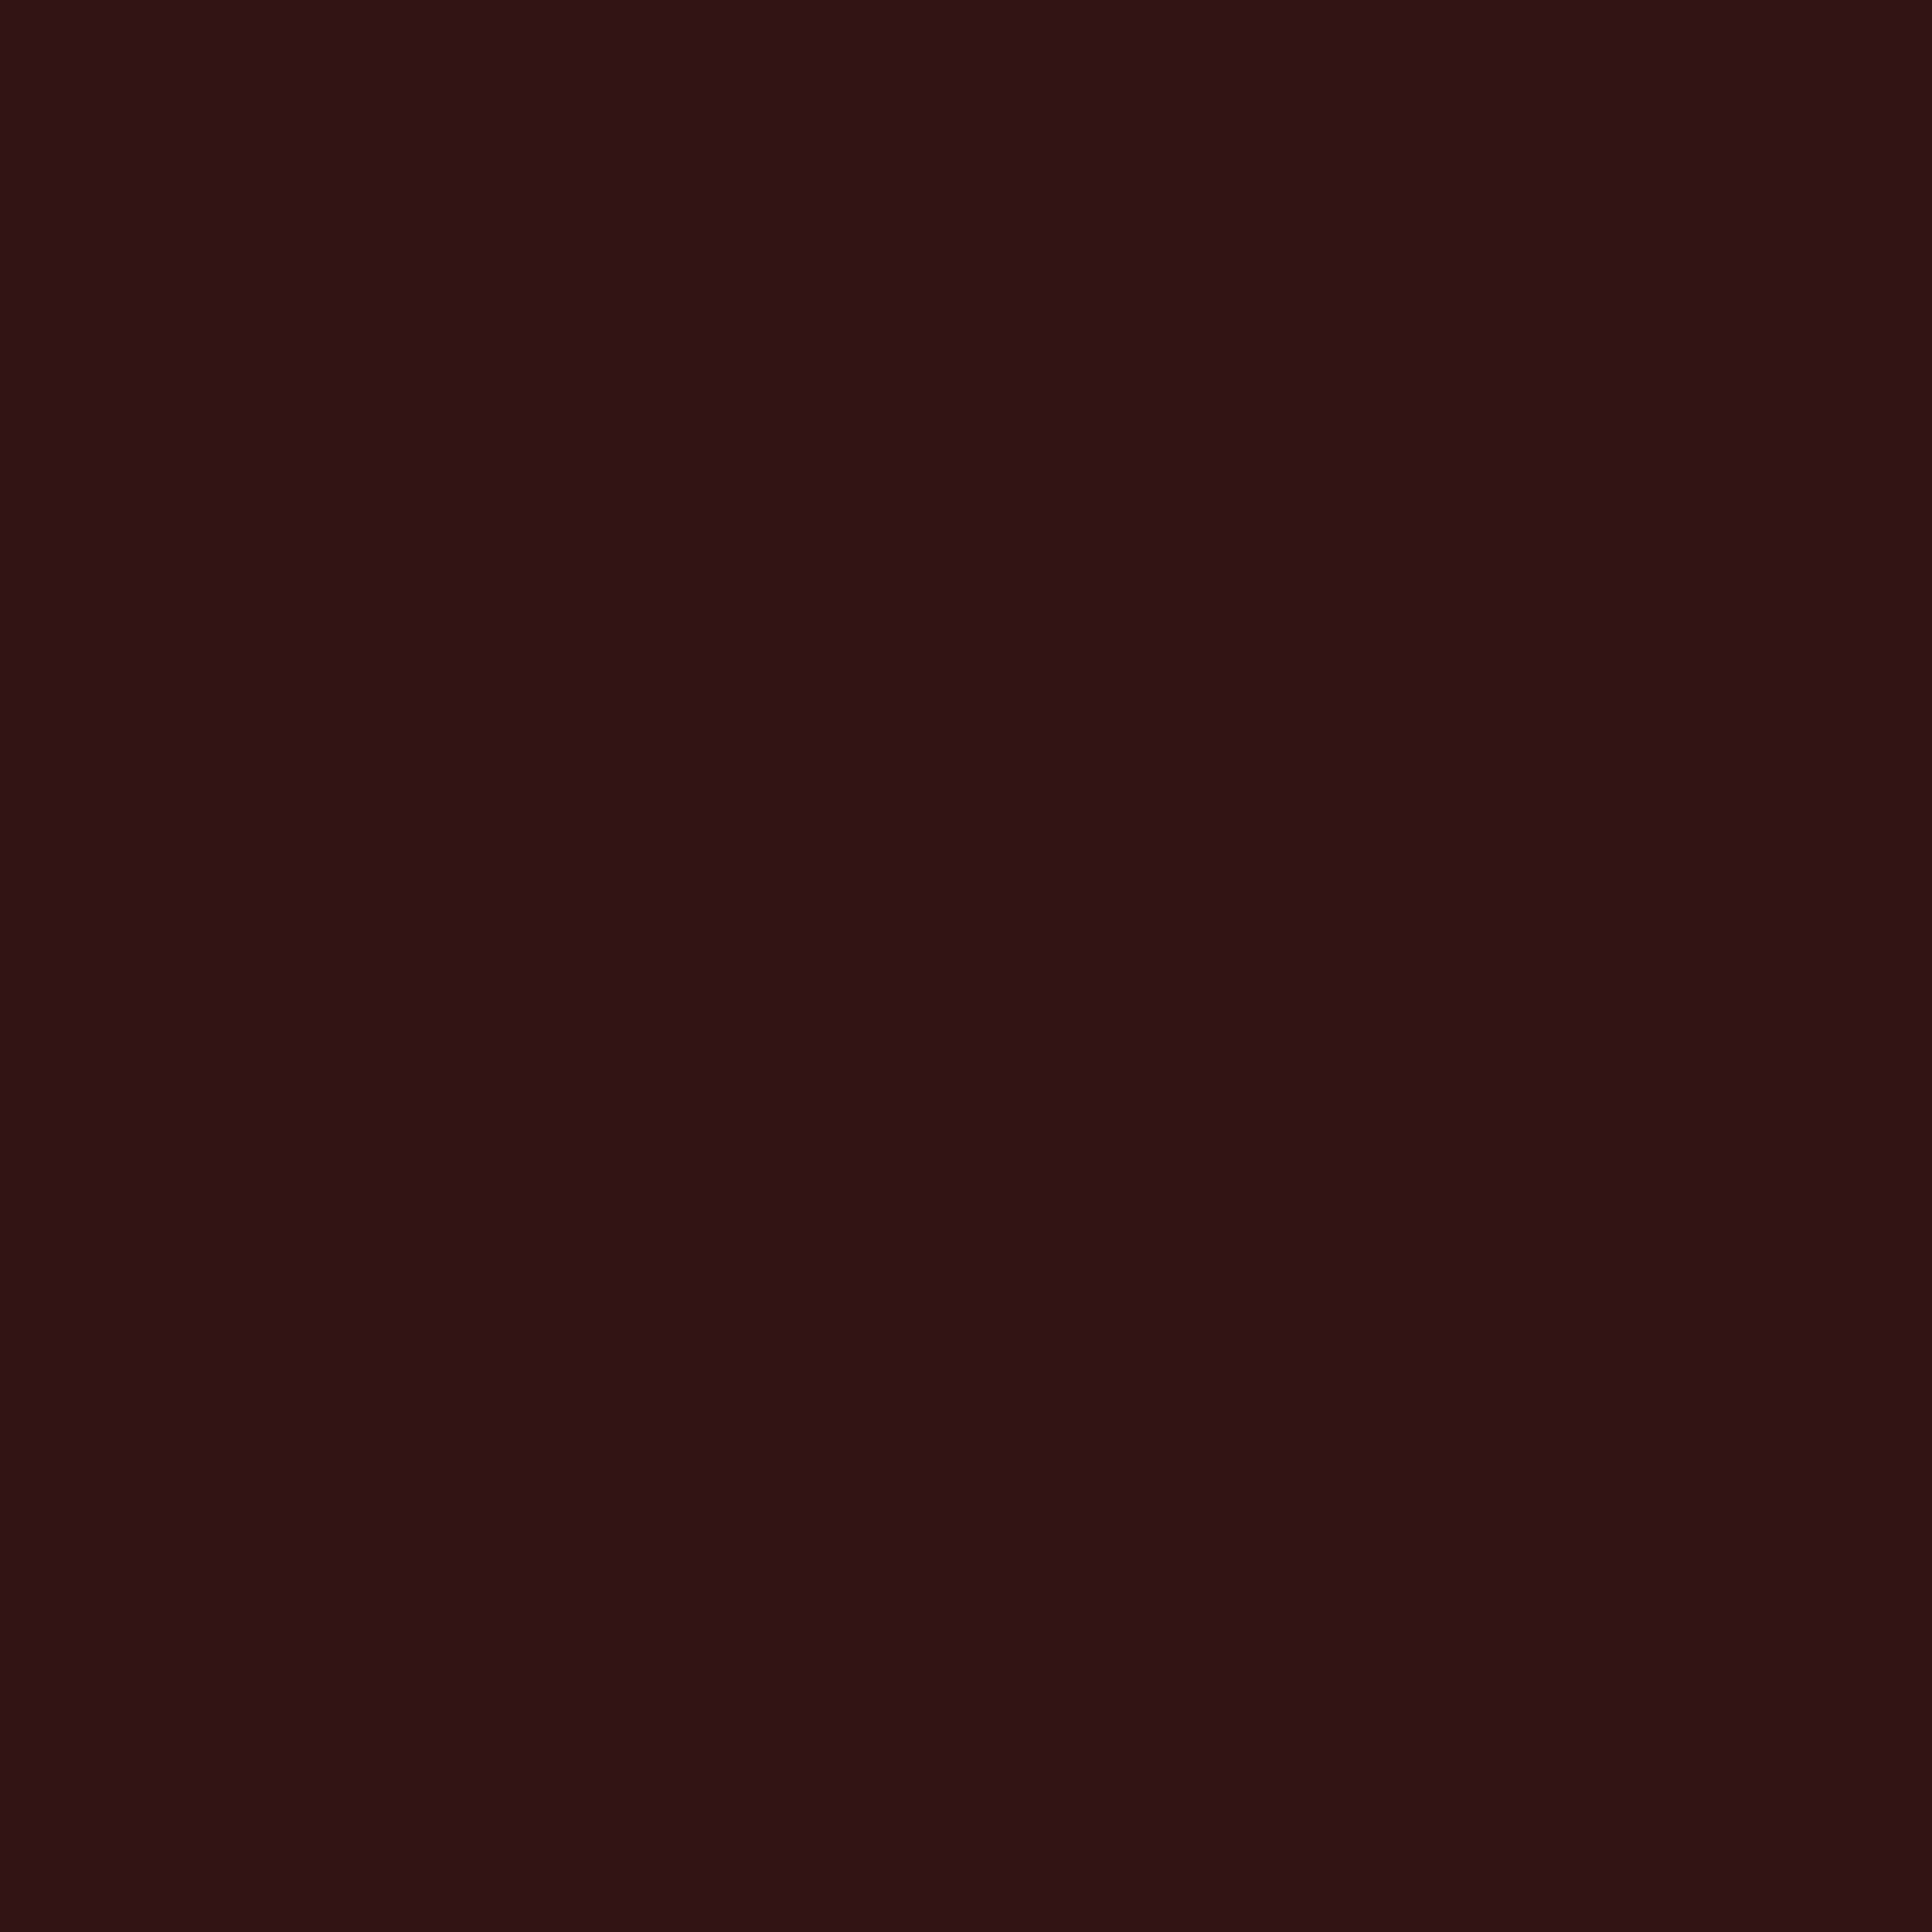 3600x3600 Seal Brown Solid Color Background